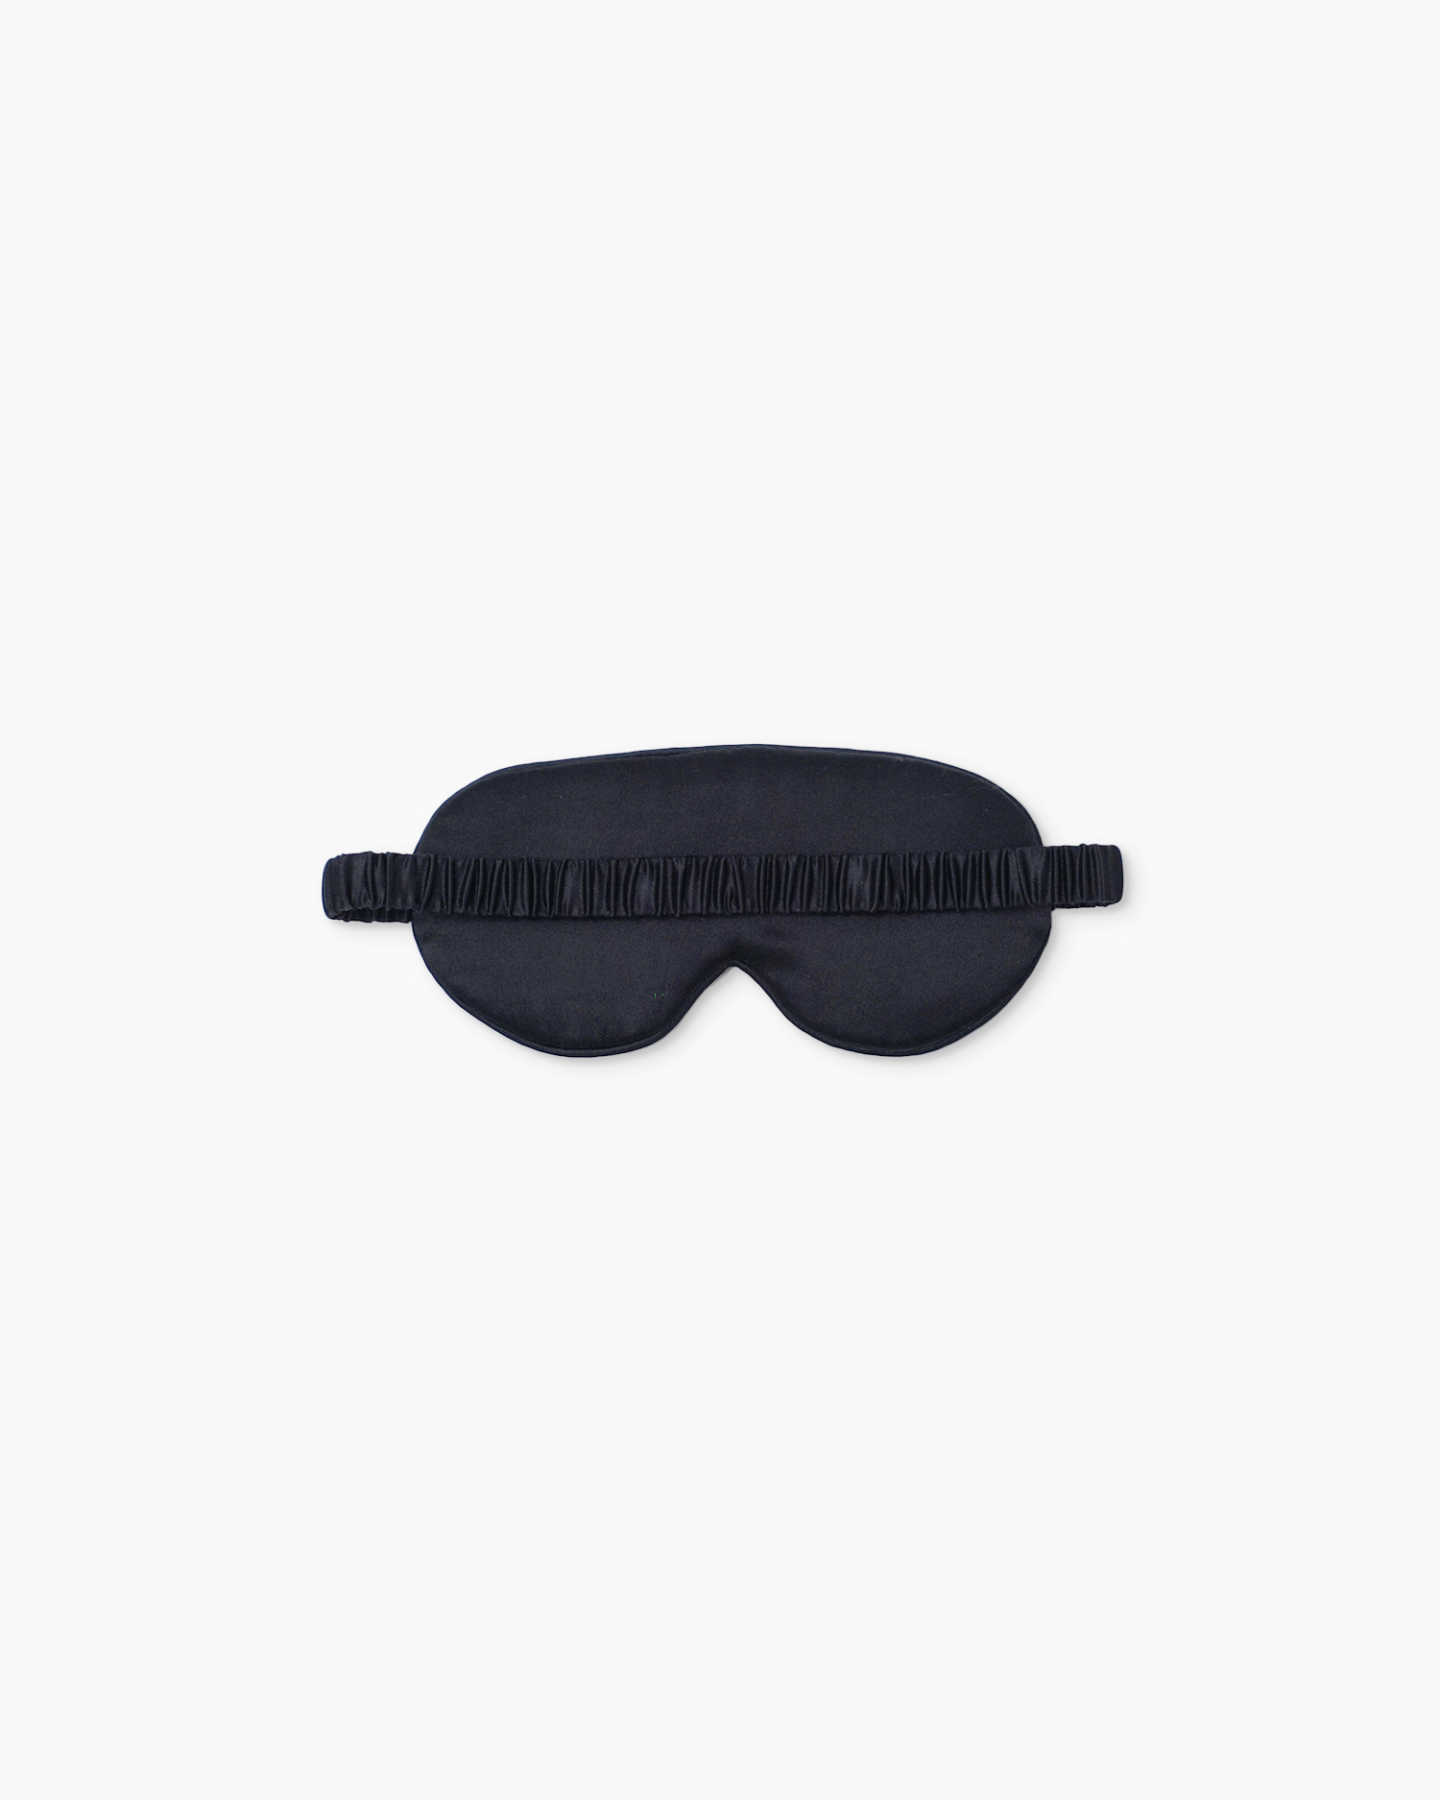 Mulberry Silk Beauty Sleep Mask - Black - 2